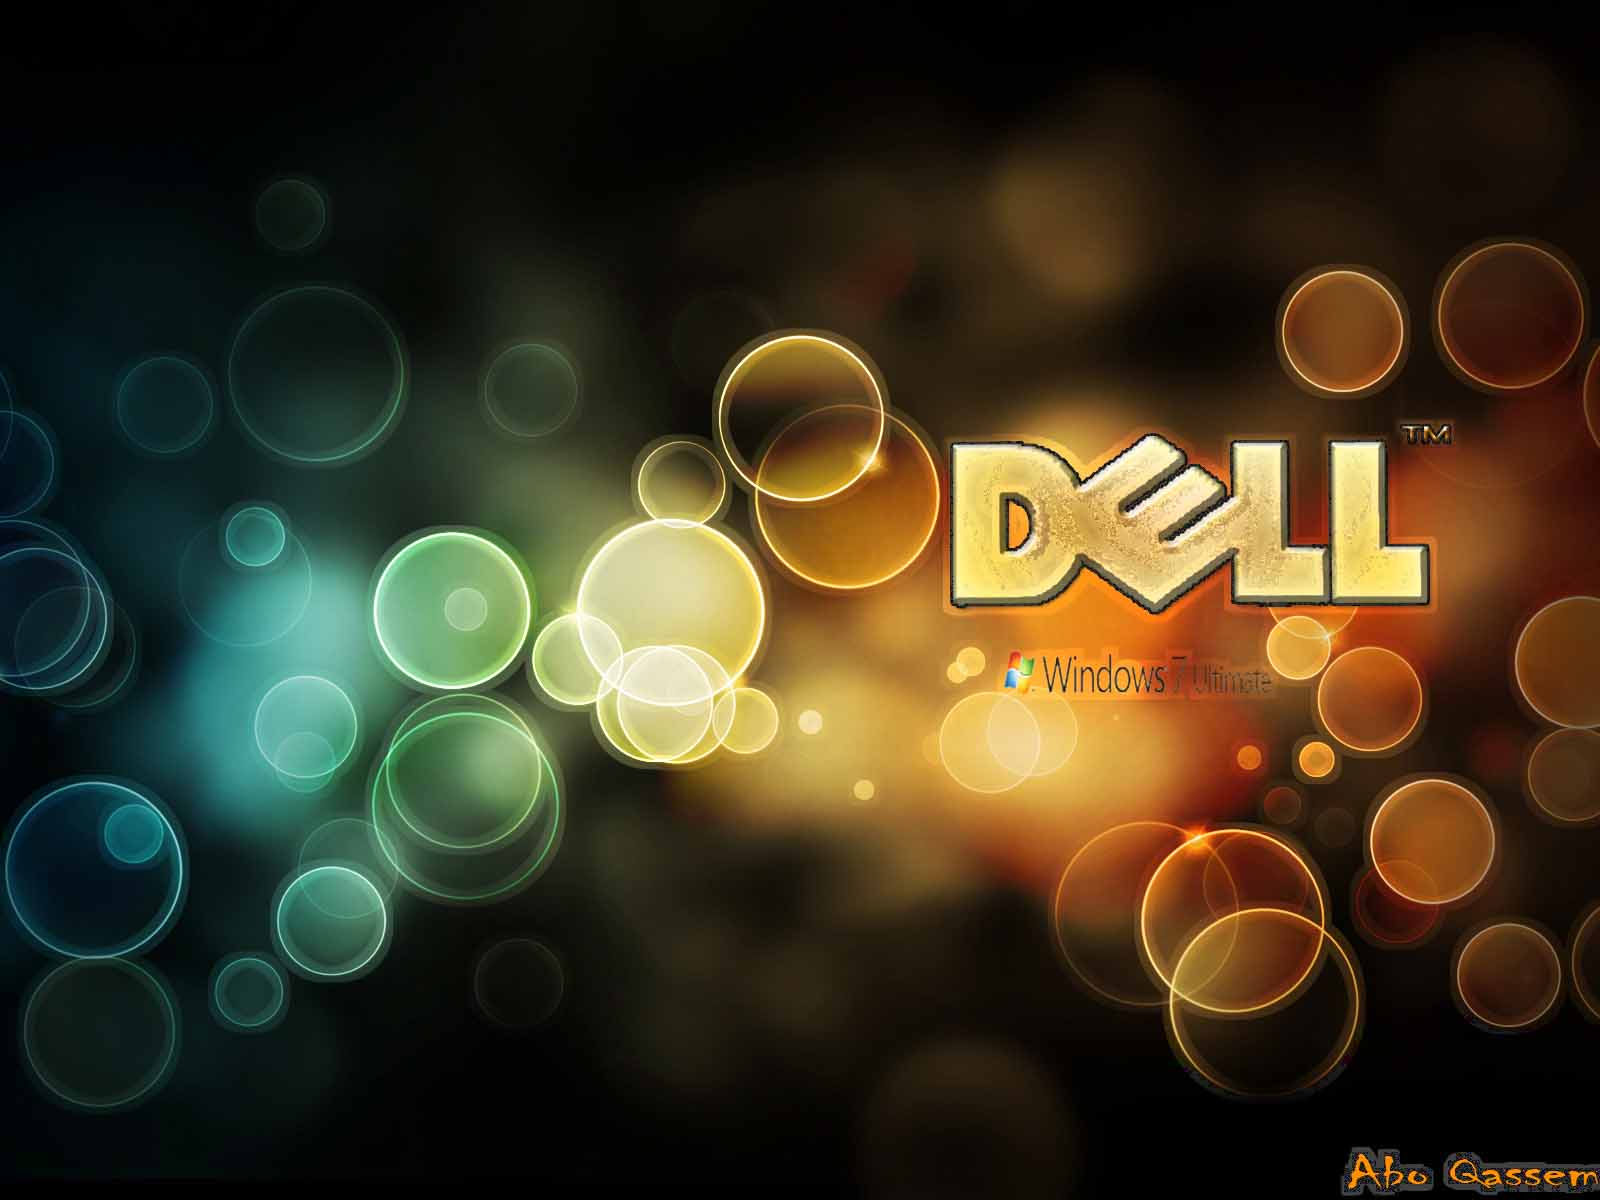 Dell Wallpaper: 3D Wallpapers: Laptop Dell Wallpapers